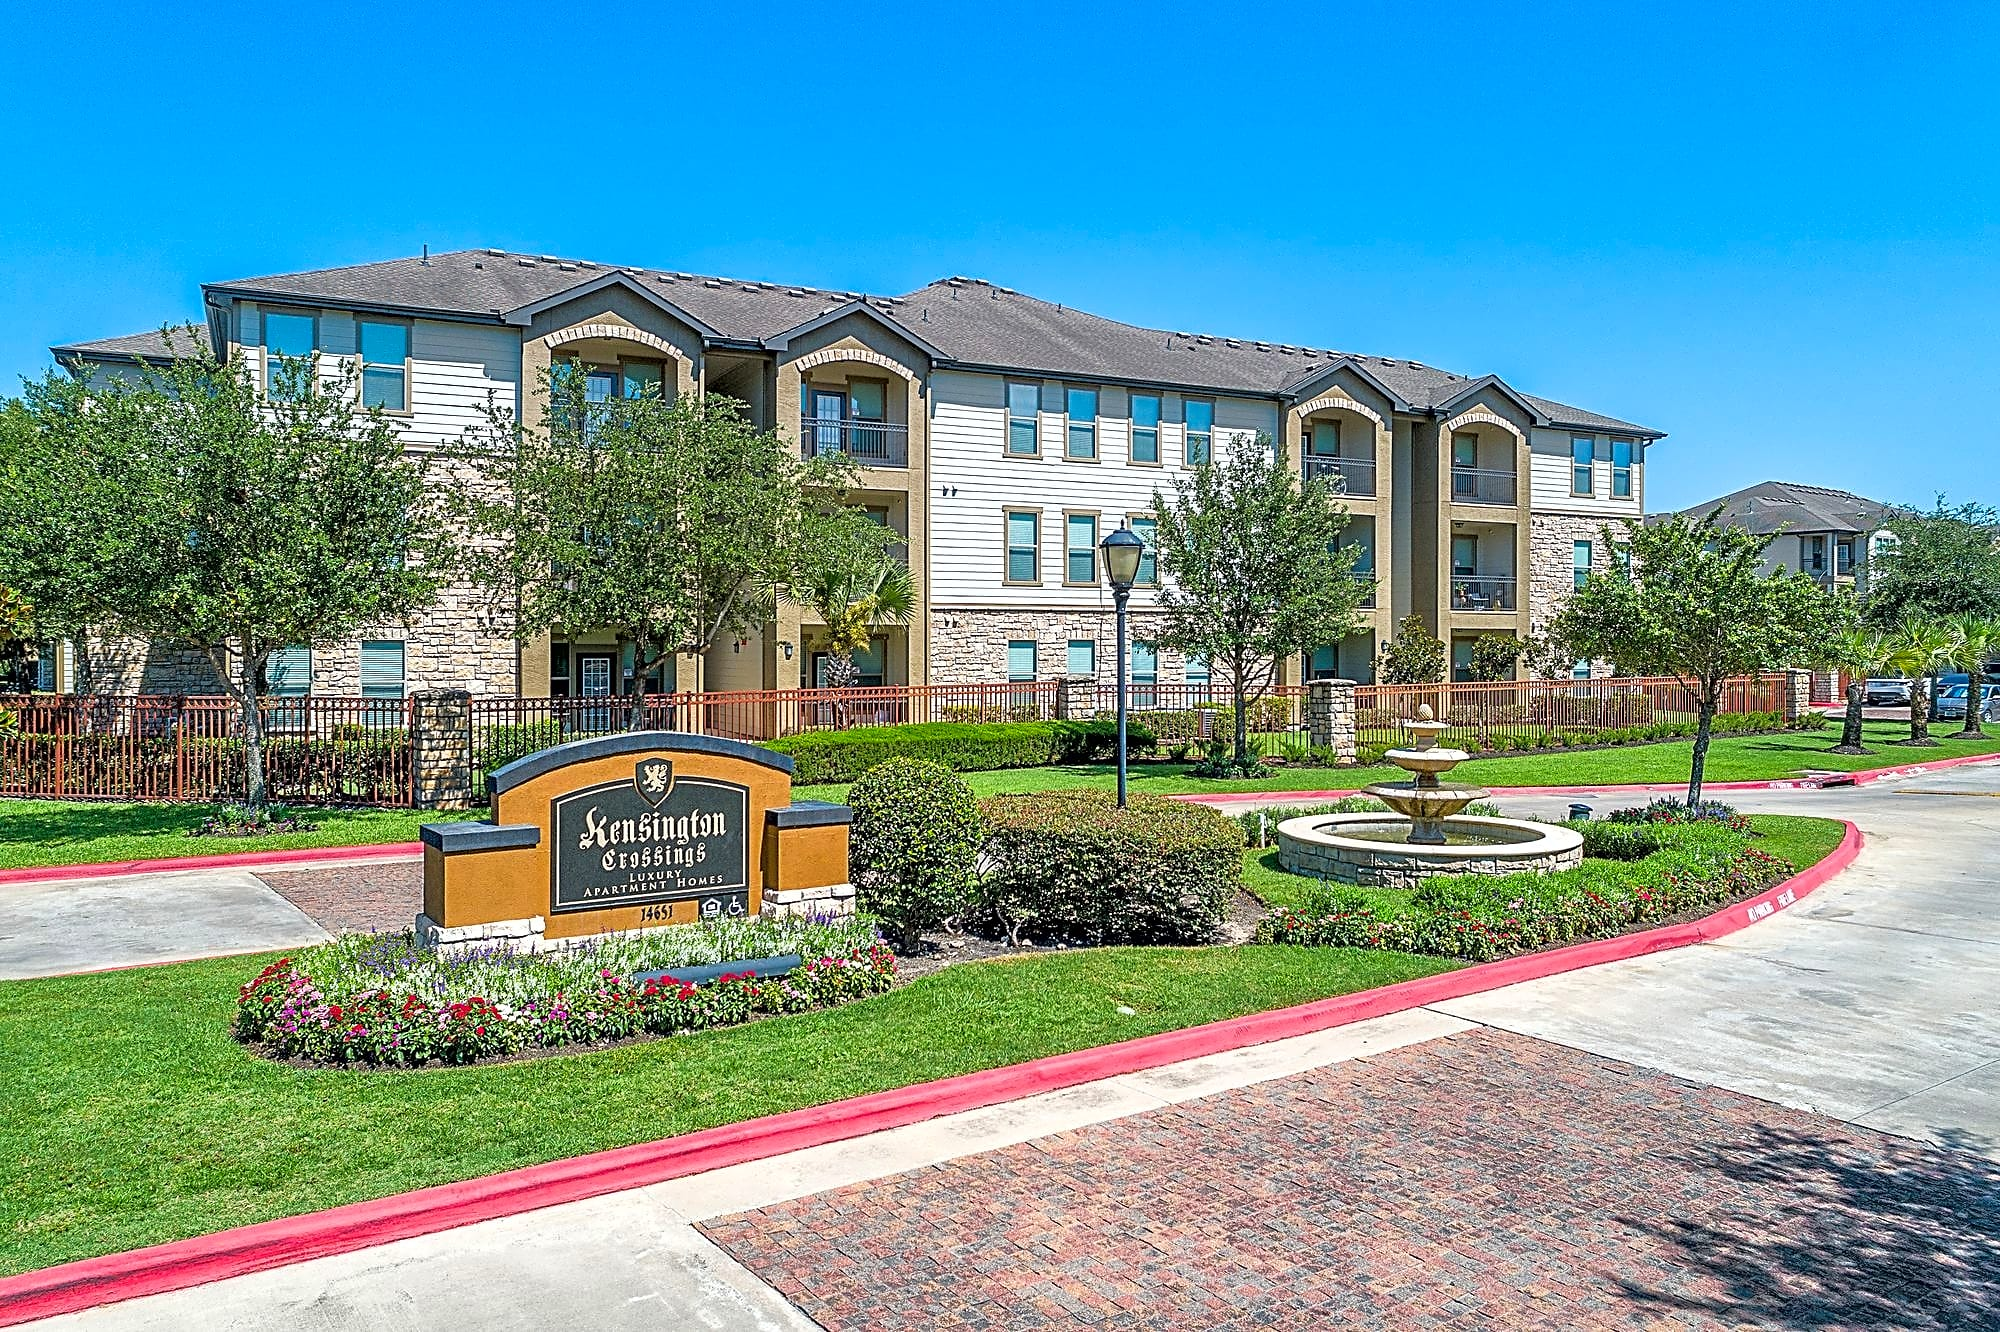 Apartments Near Strayer University-Northwest Houston Kensington Crossings for Strayer University-Northwest Houston Students in Houston, TX